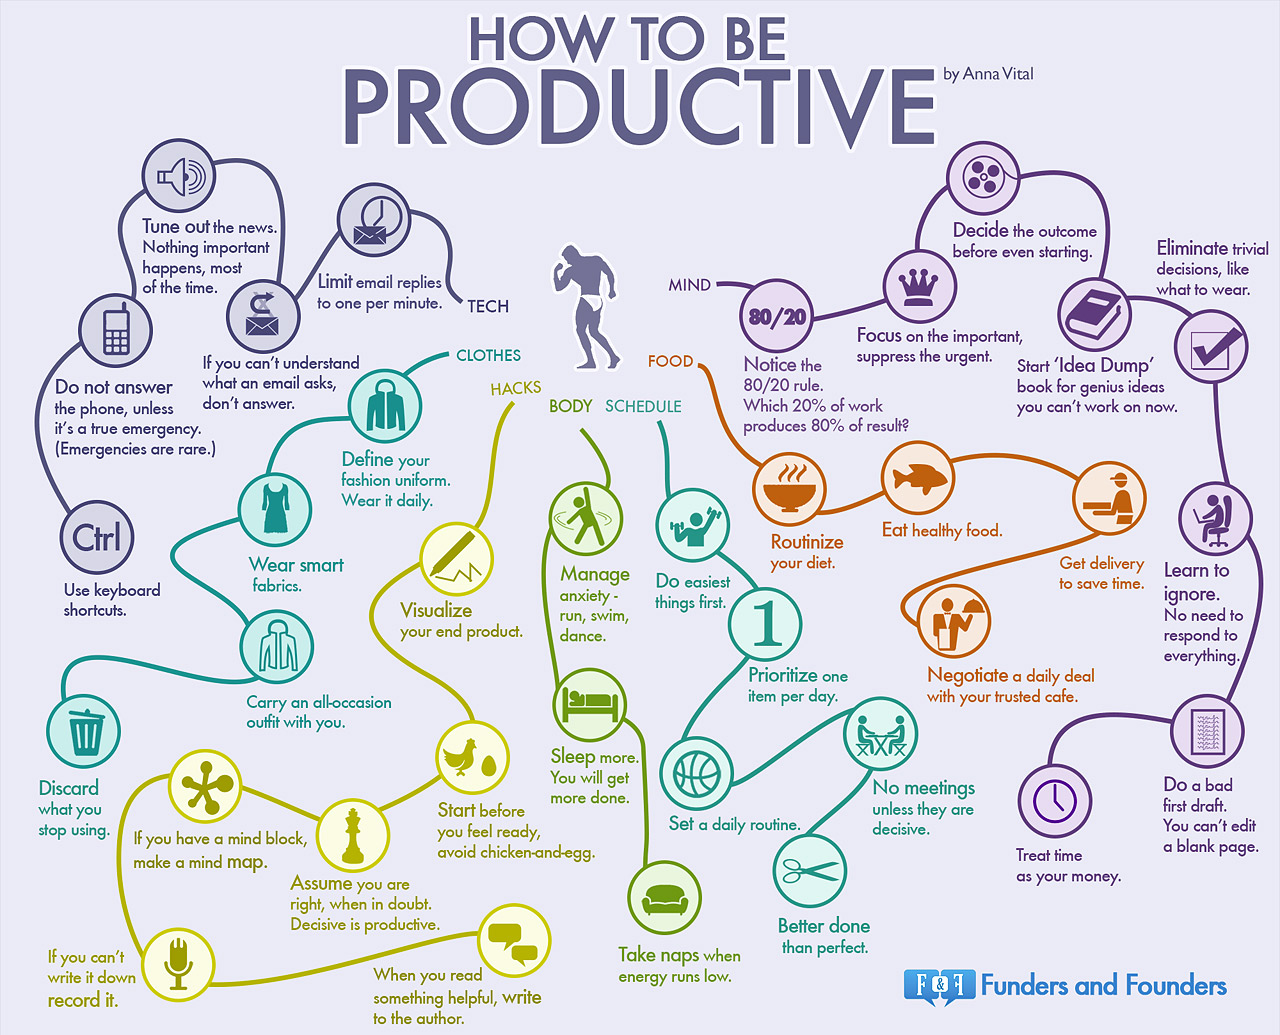 35_habits_of_most_productive_people.jpg